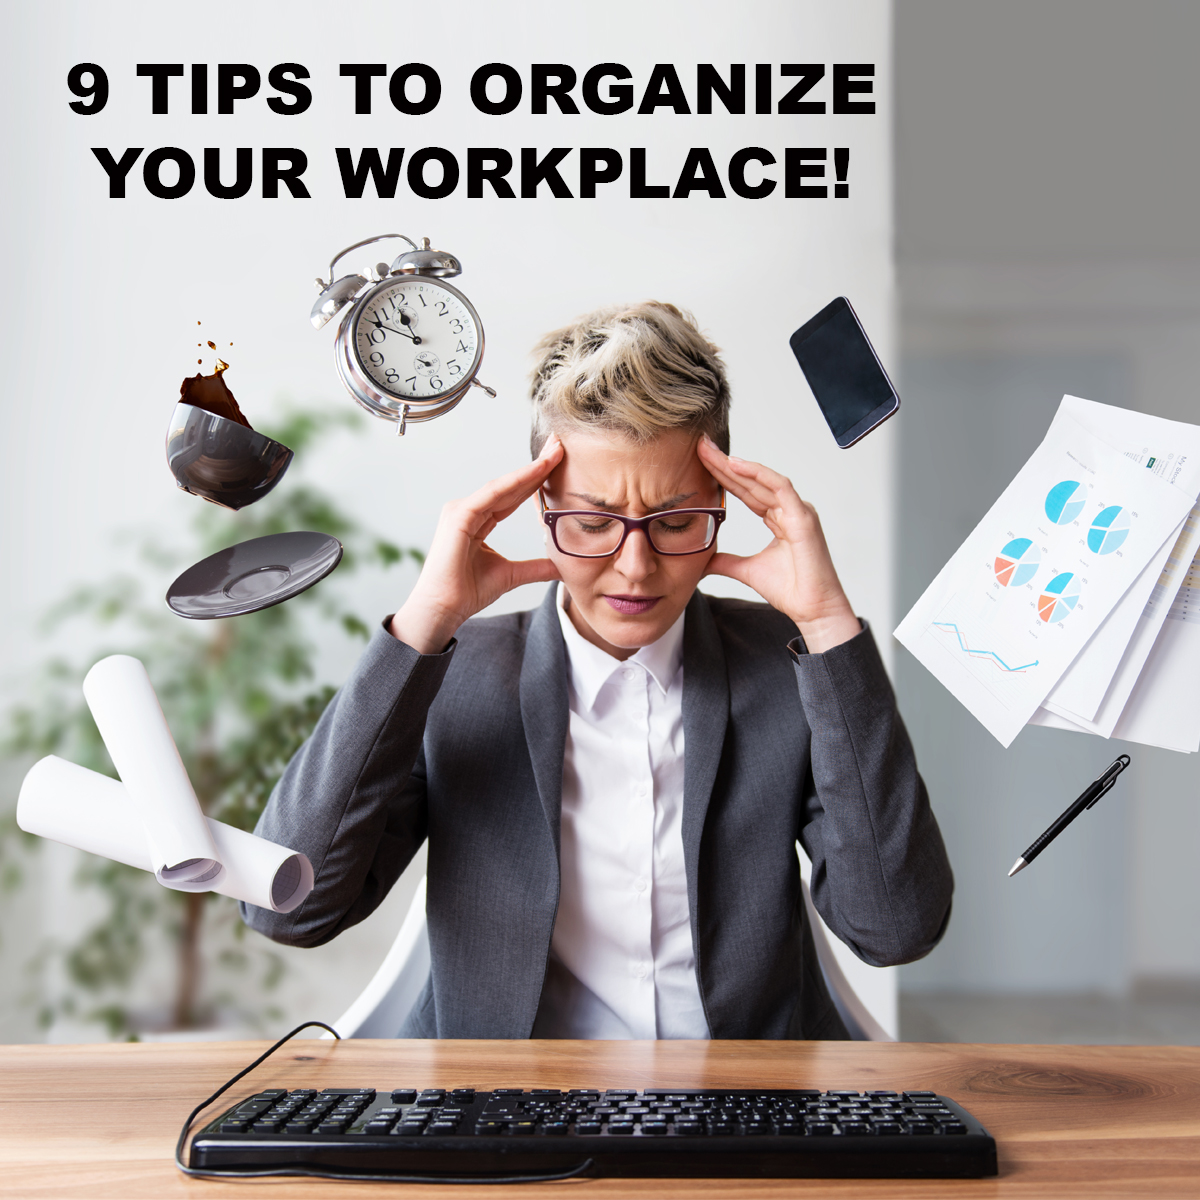 PODCAST PALOOZA PLAYBACK: 9 TIPS TO BETTER ORGANIZATION IN THE WORKPLACE